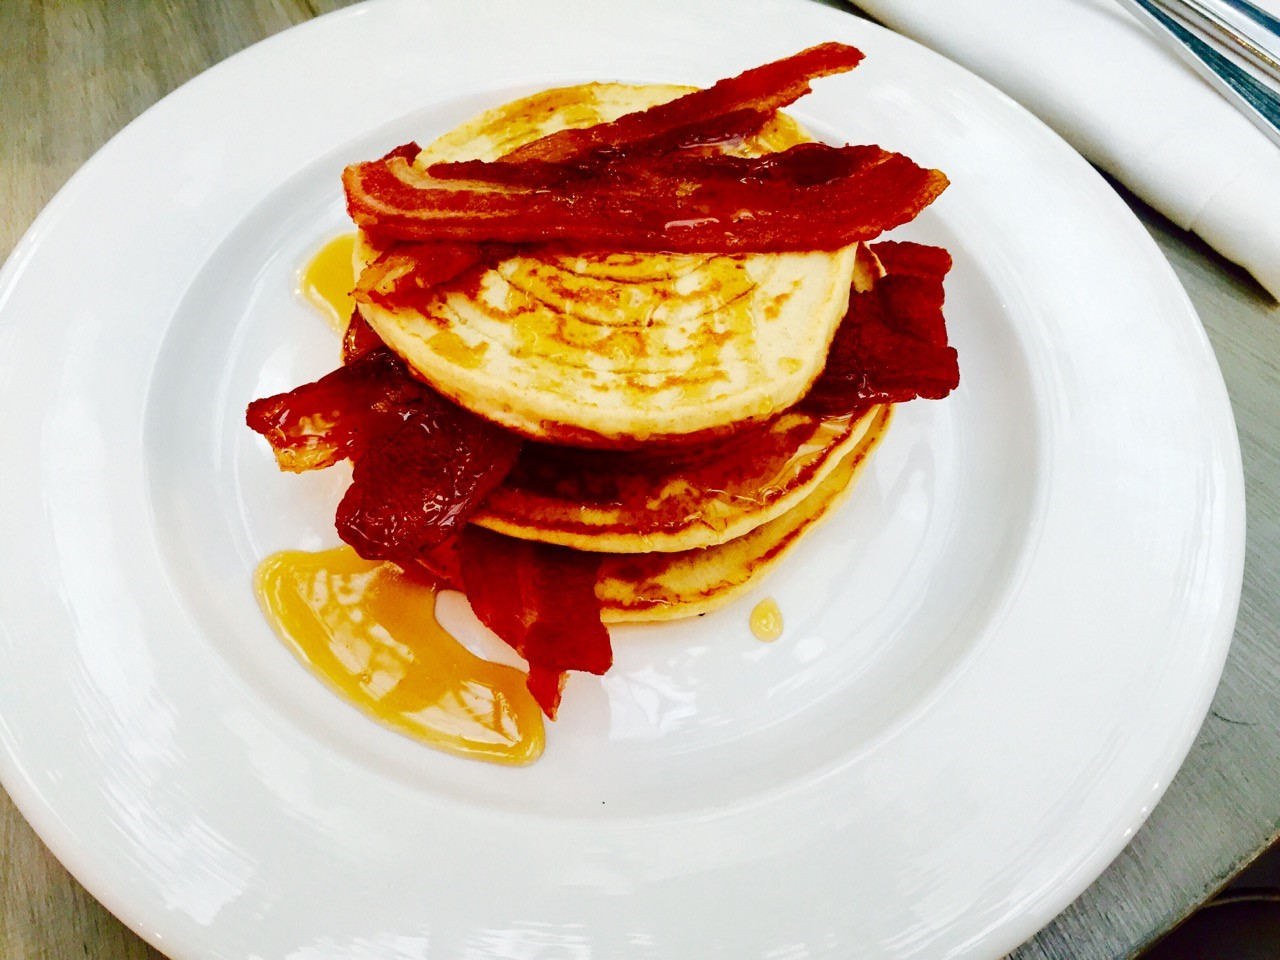 We went. We ate. We cooked: Blixen's maple pancakes